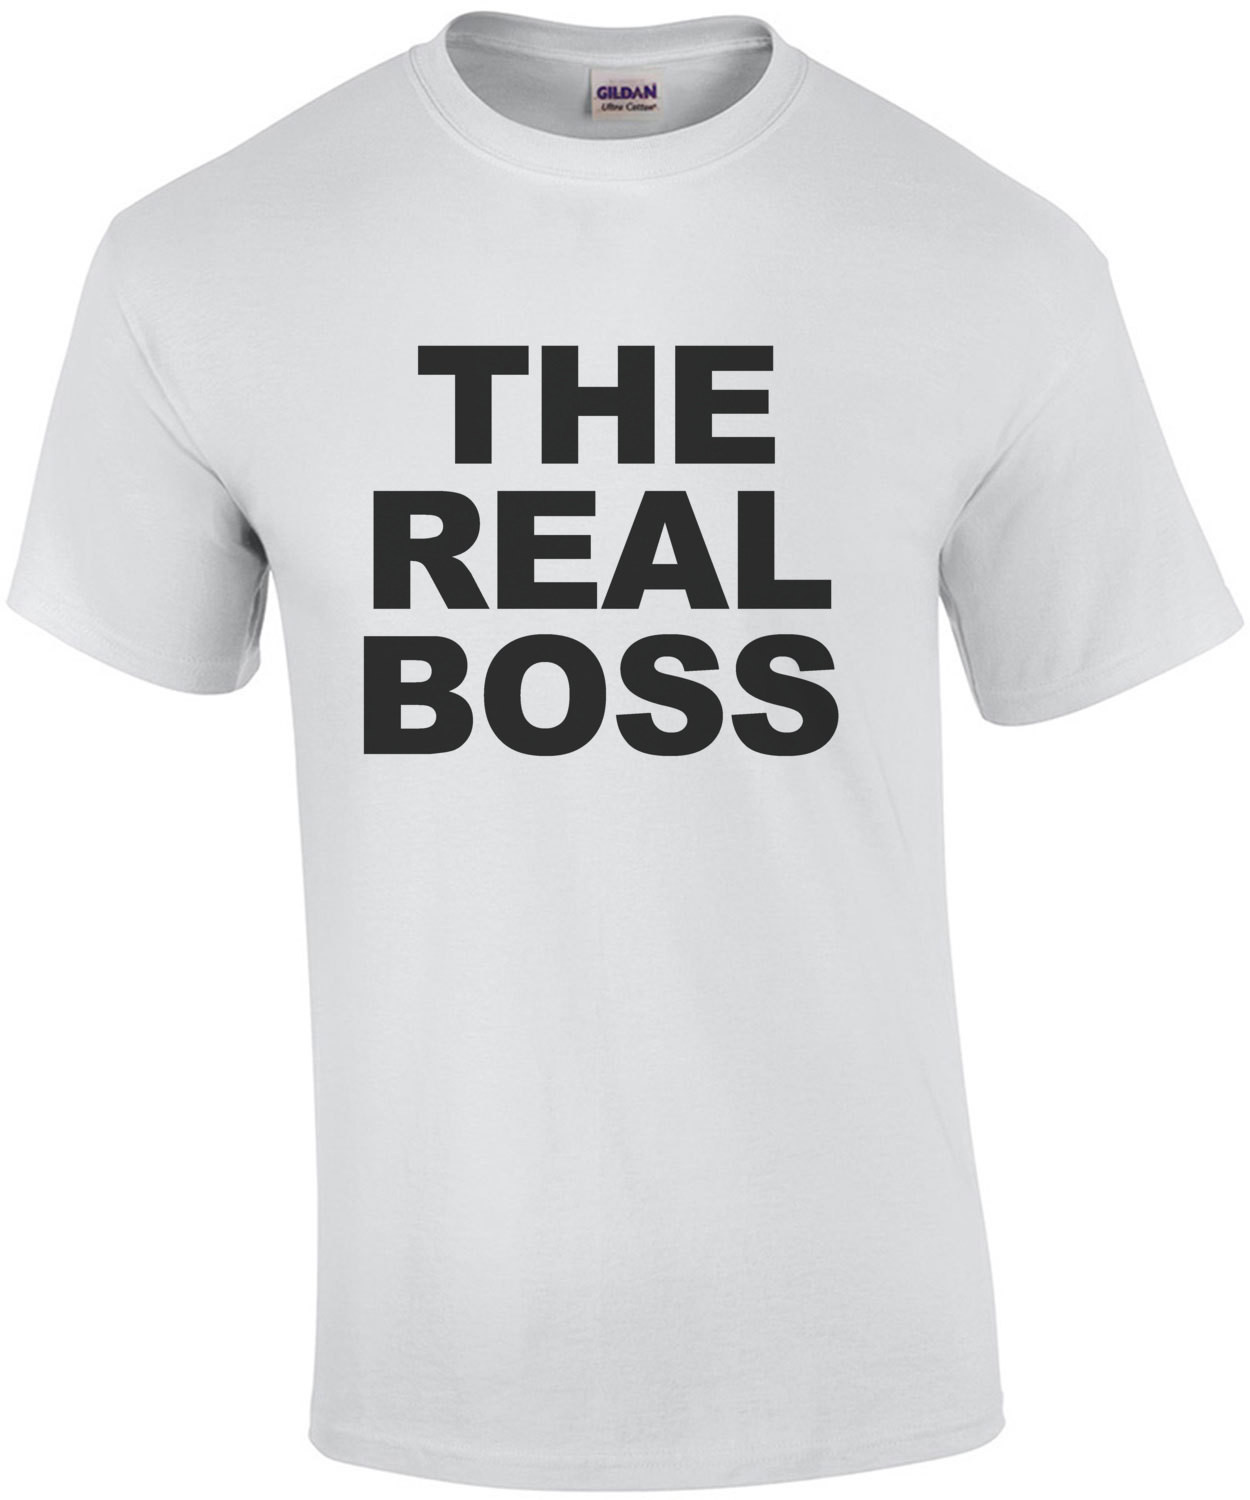 The Real Boss - Funny couple's t-shirt